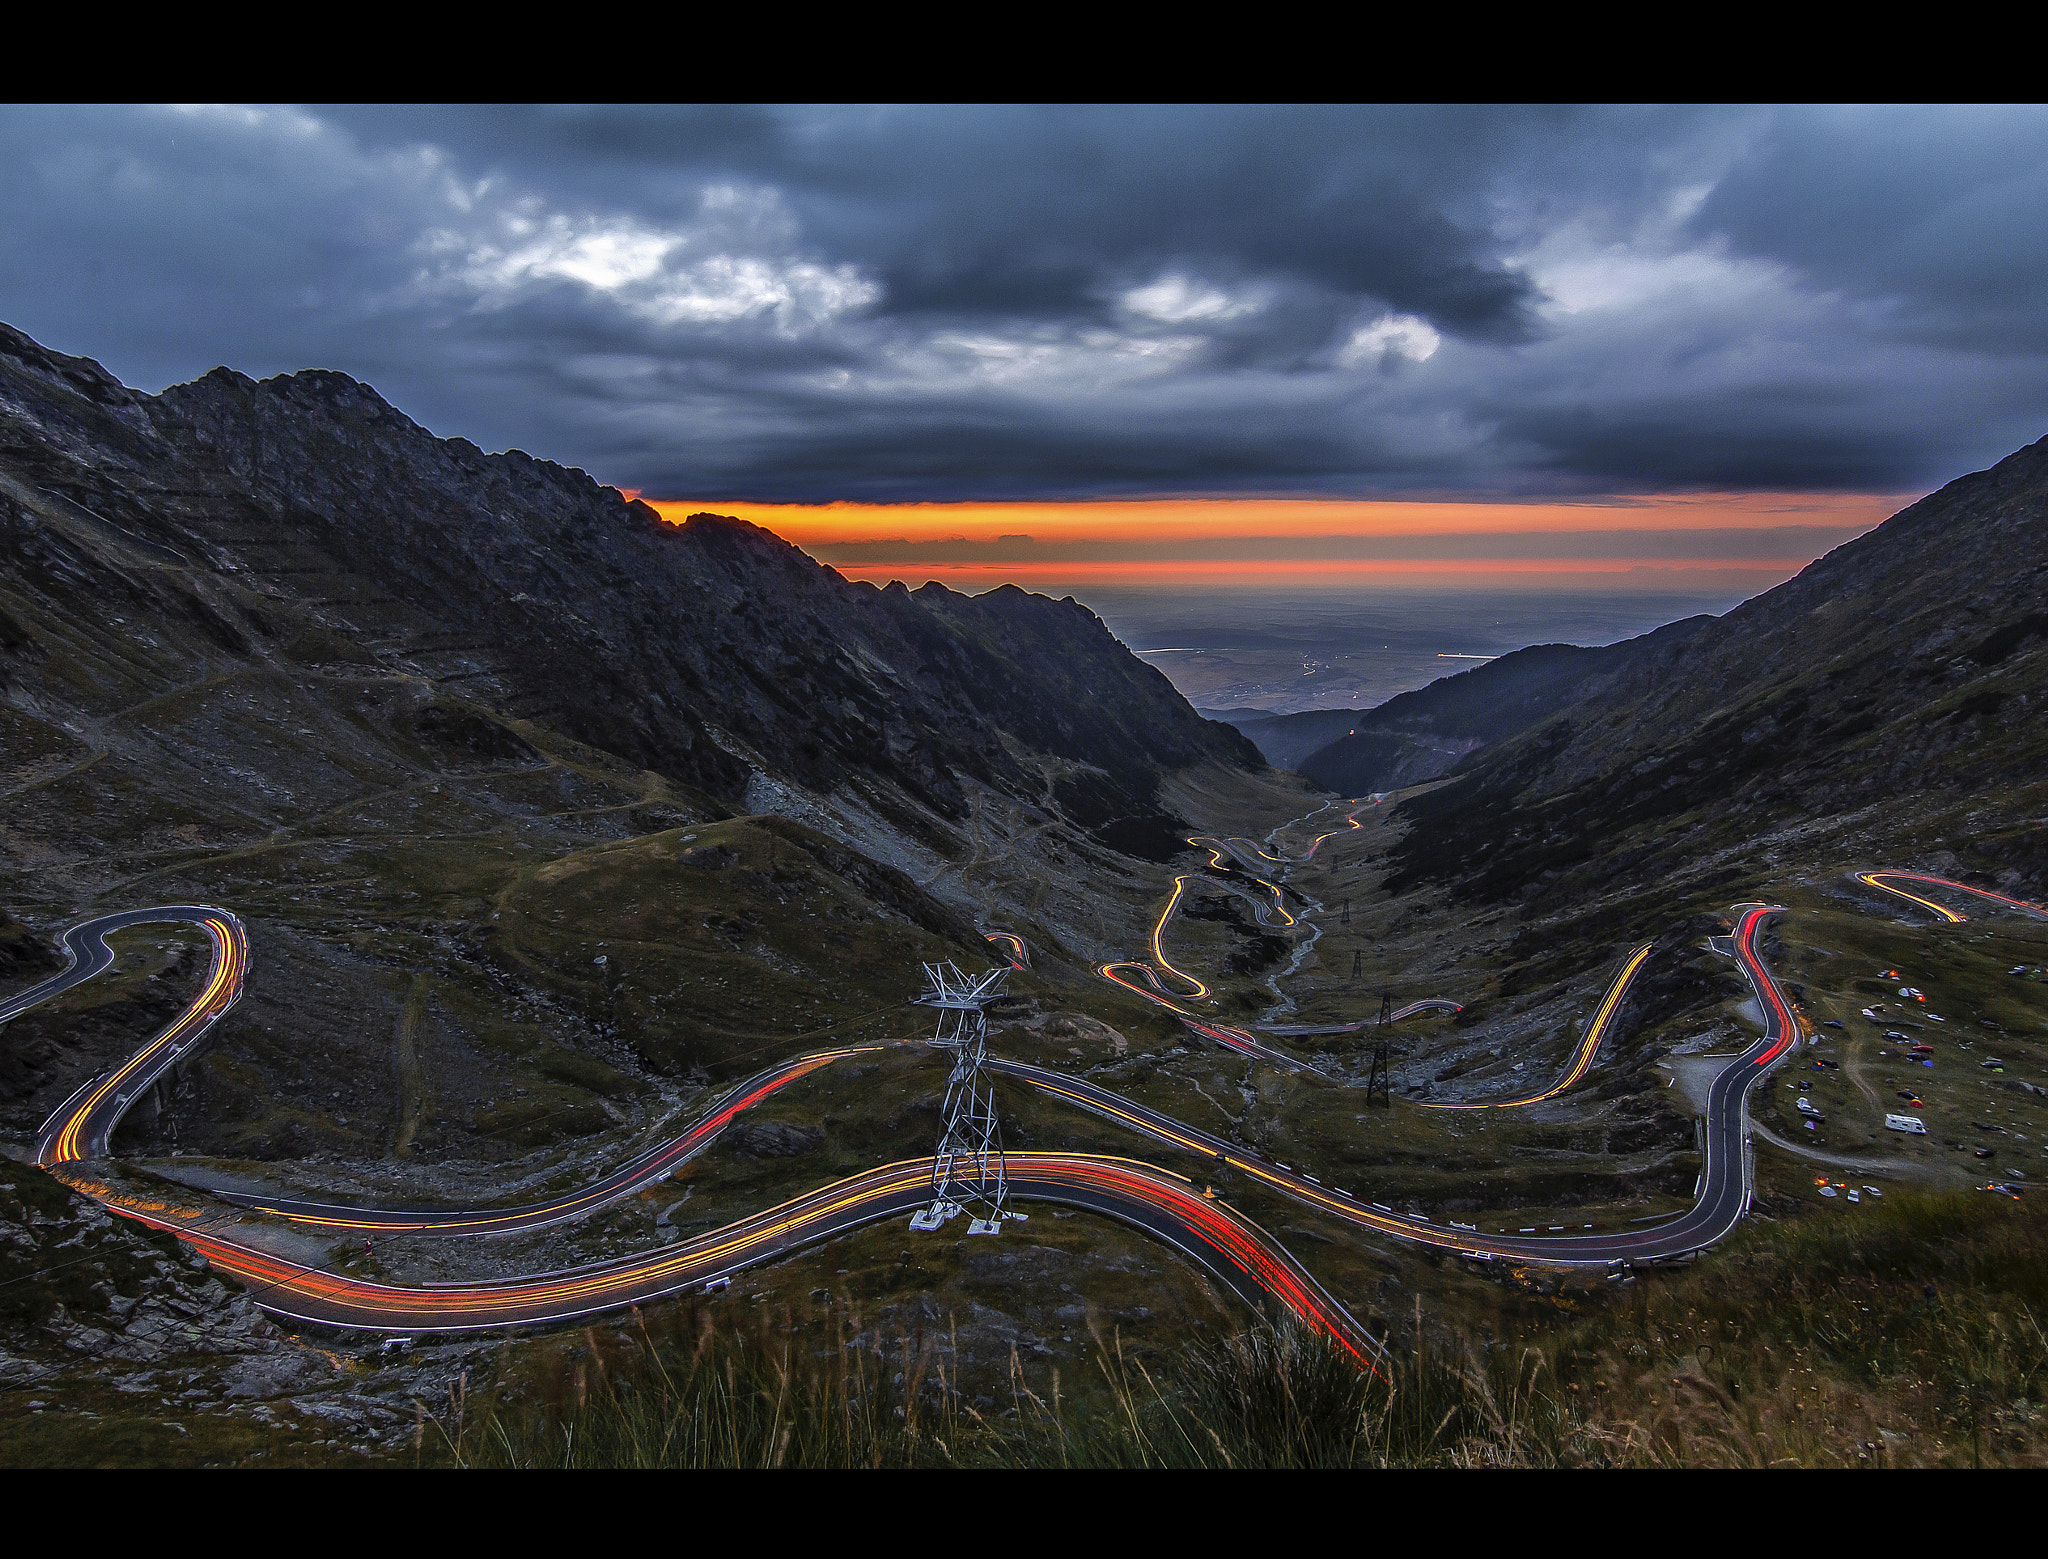 Photograph The TransFagarasan by Tony Goran on 500px